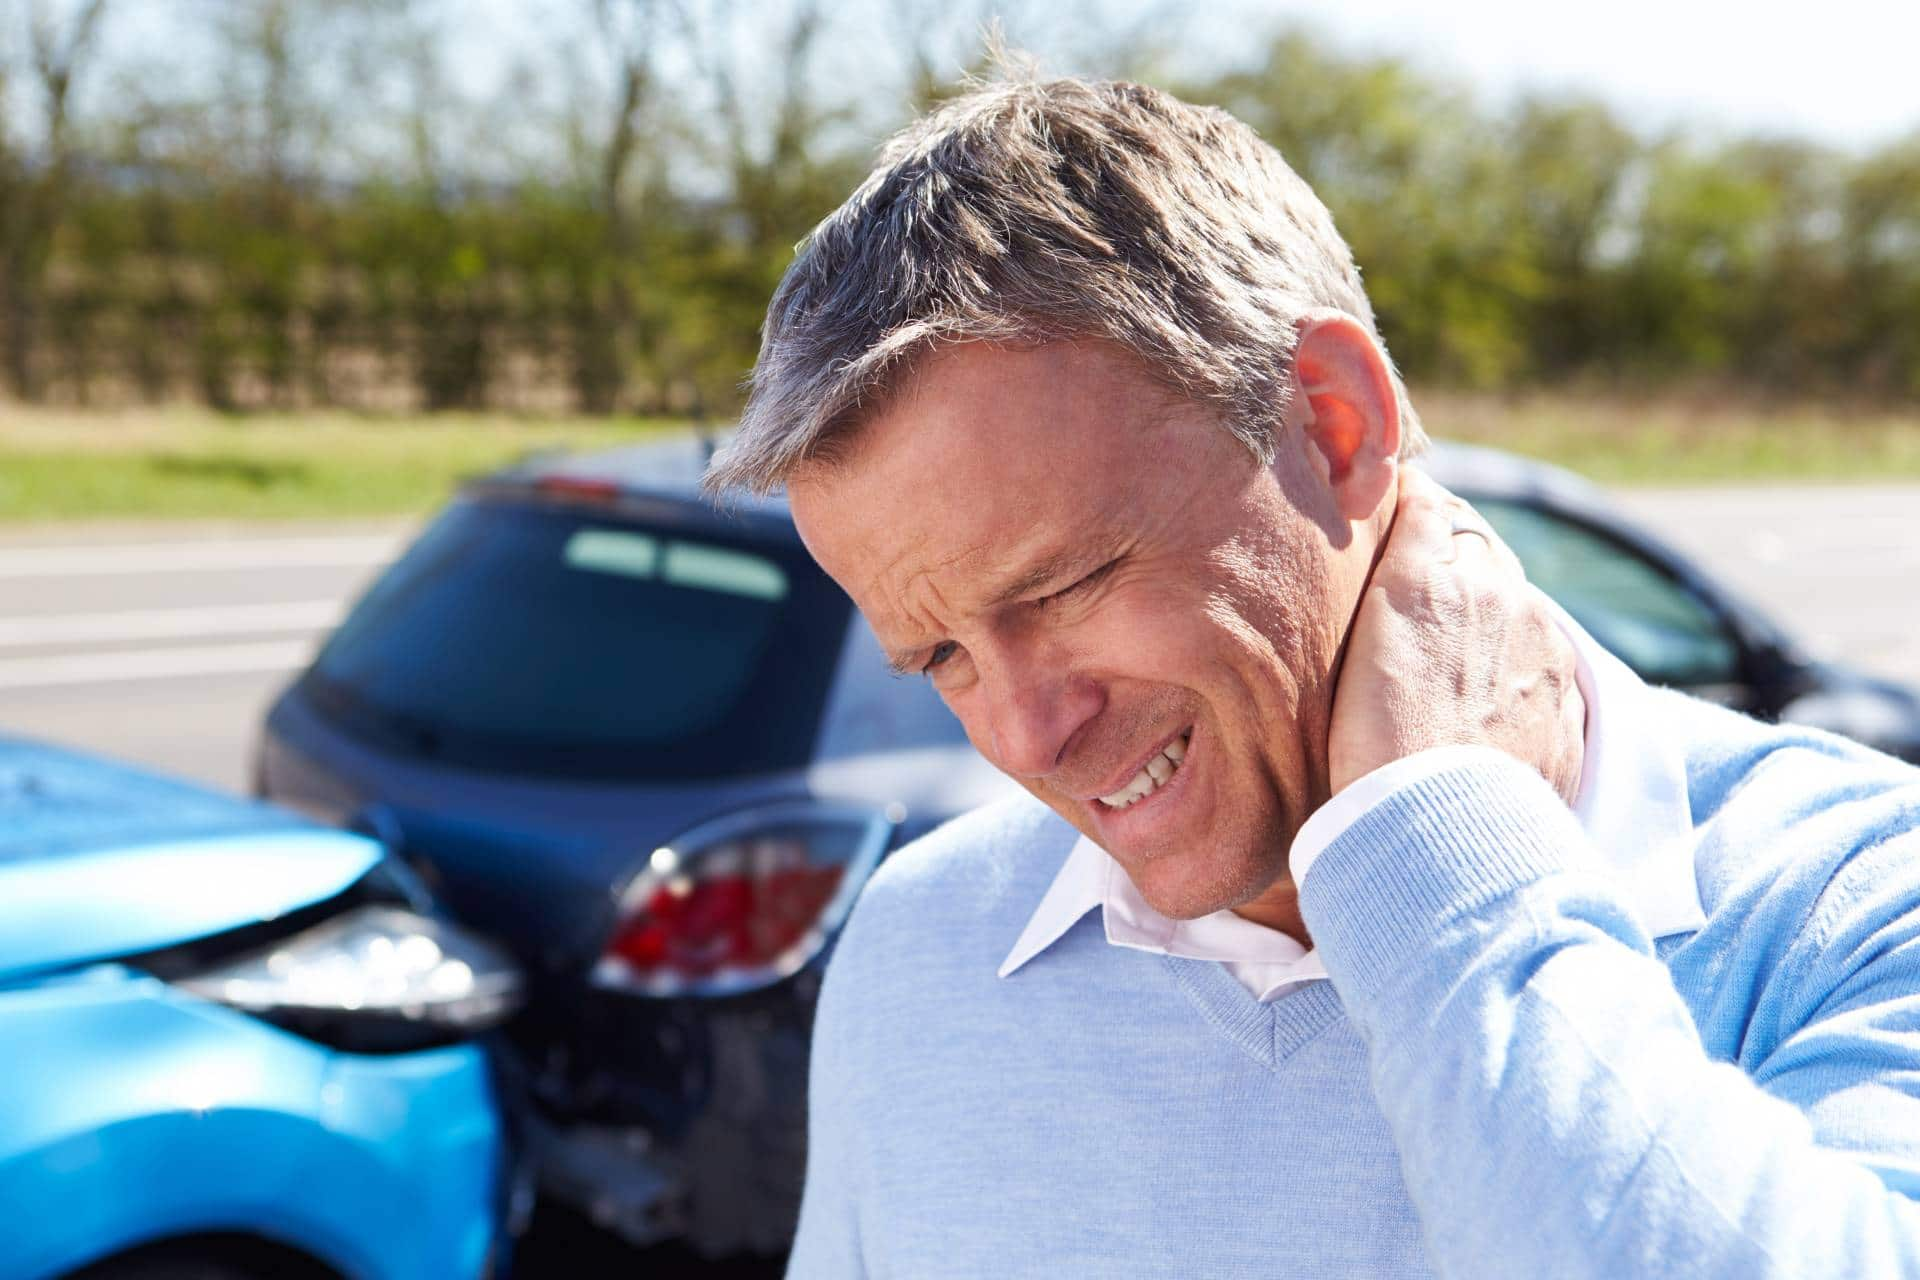 Injured in a car accident? Schedule a free consultation with our personal injury lawyers at the Angell Law Firm in Reynoldstown, Ga.